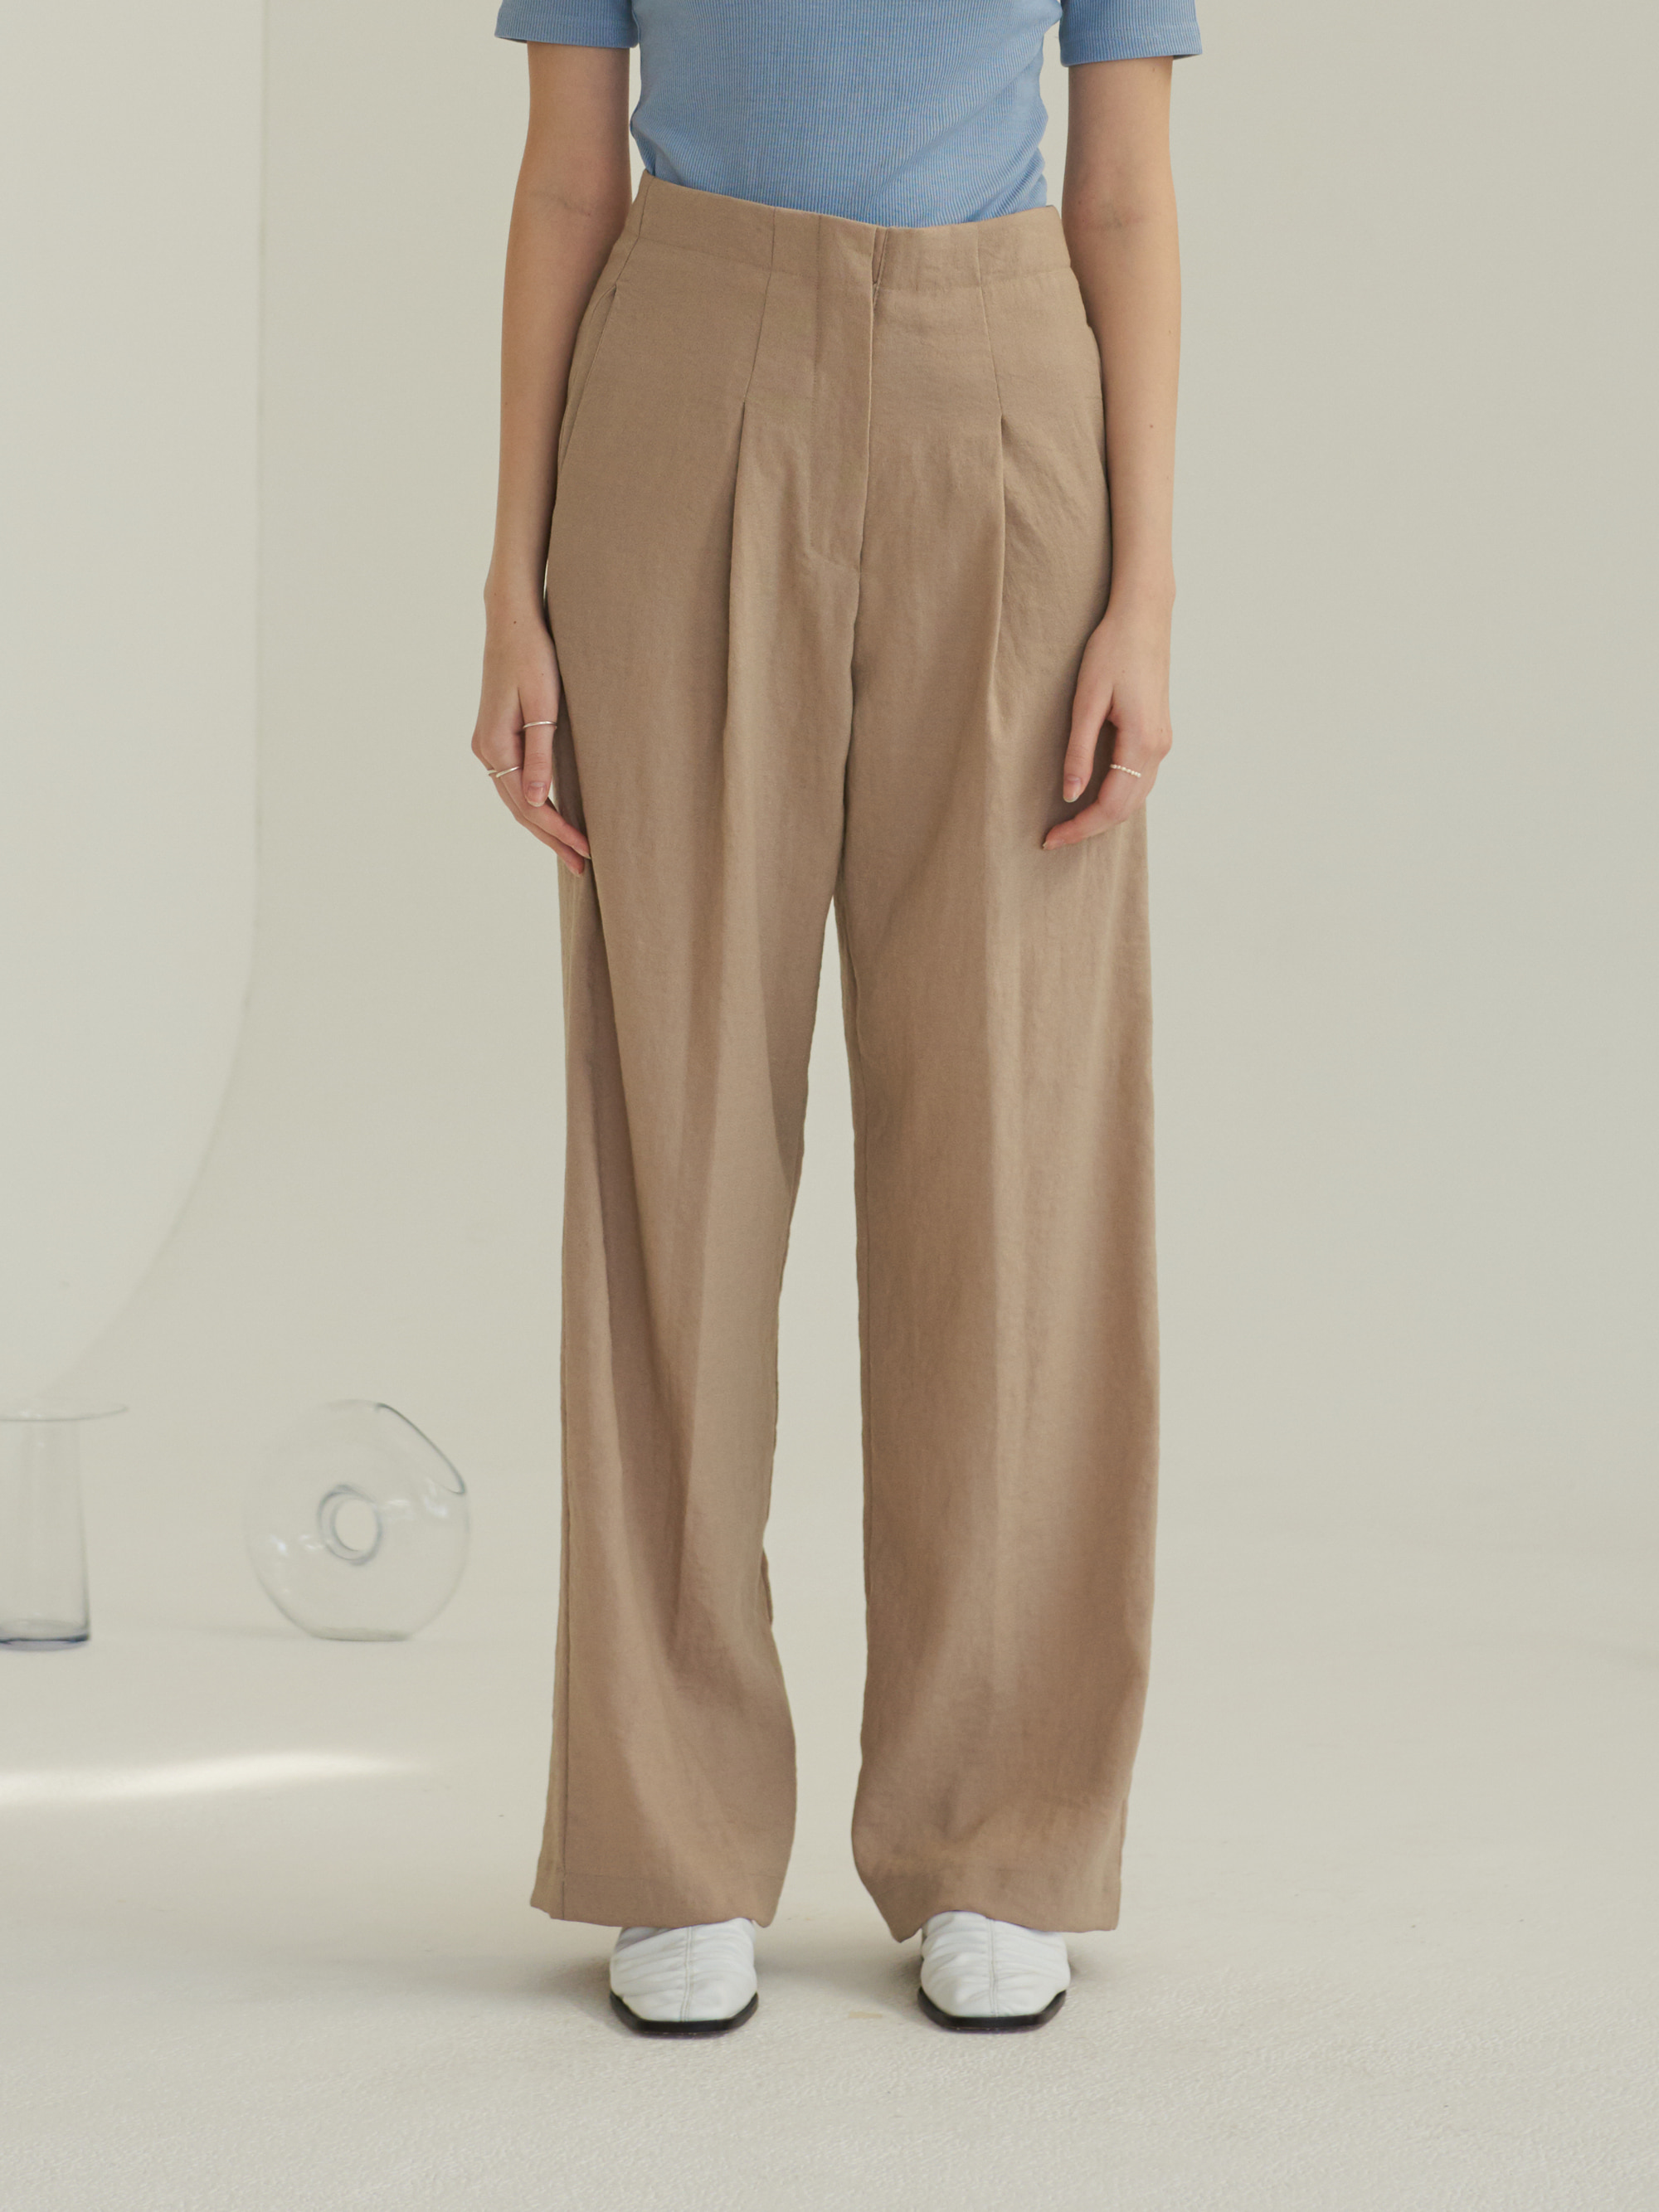 ONE TUCK WIDE PANTS (BEIGE)